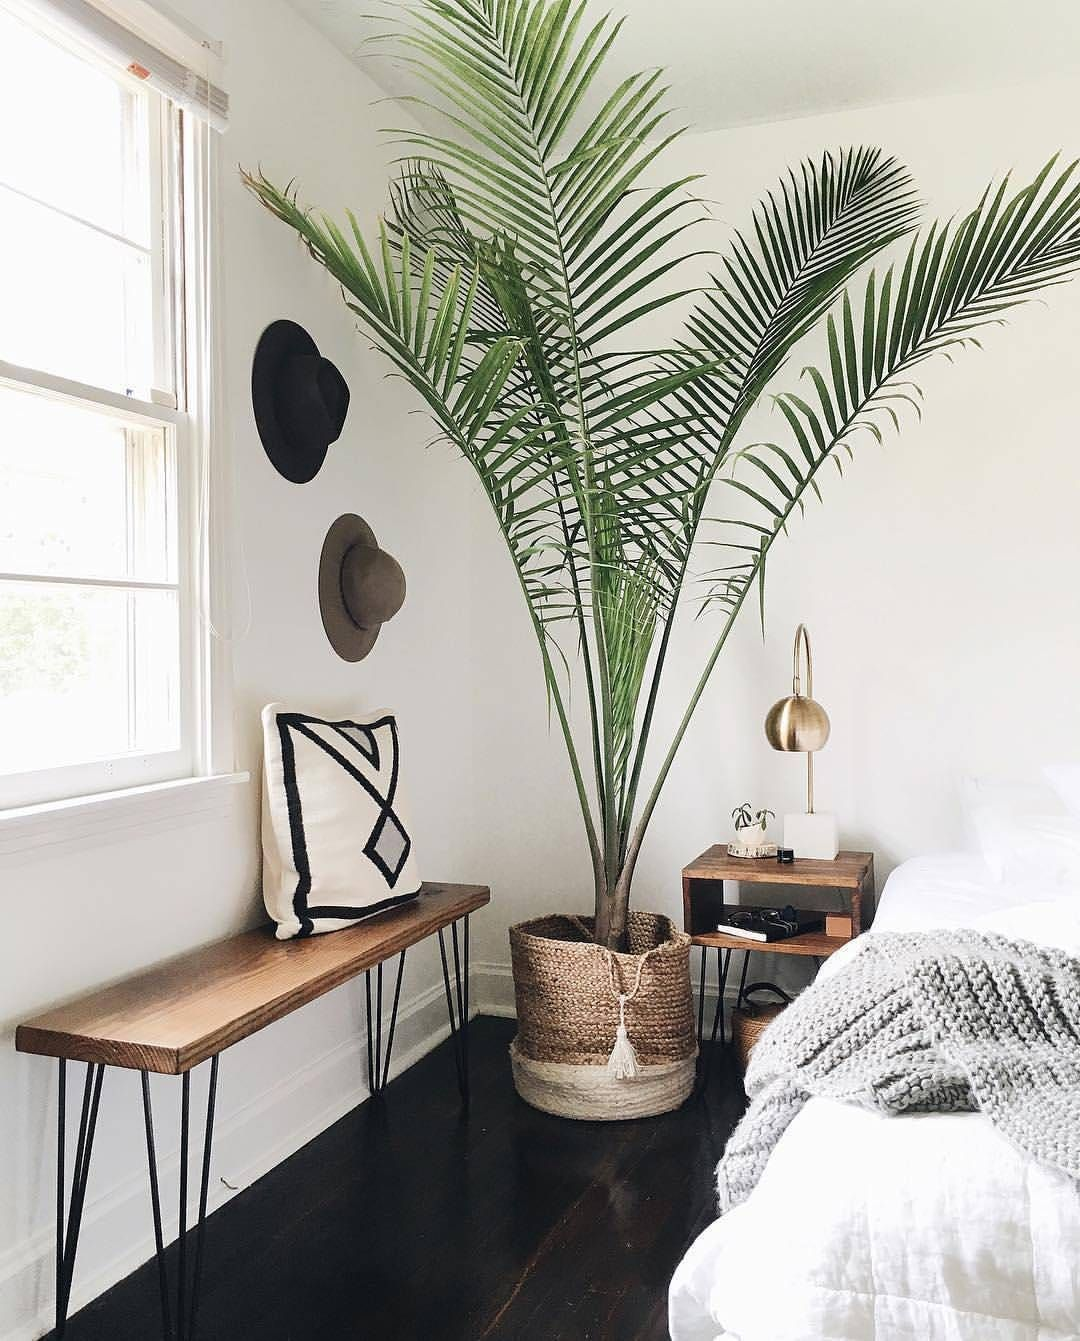 Palm Tree Decor For Bedroom 768 Likes 3 Comments Interior Home Decor Serie7es On